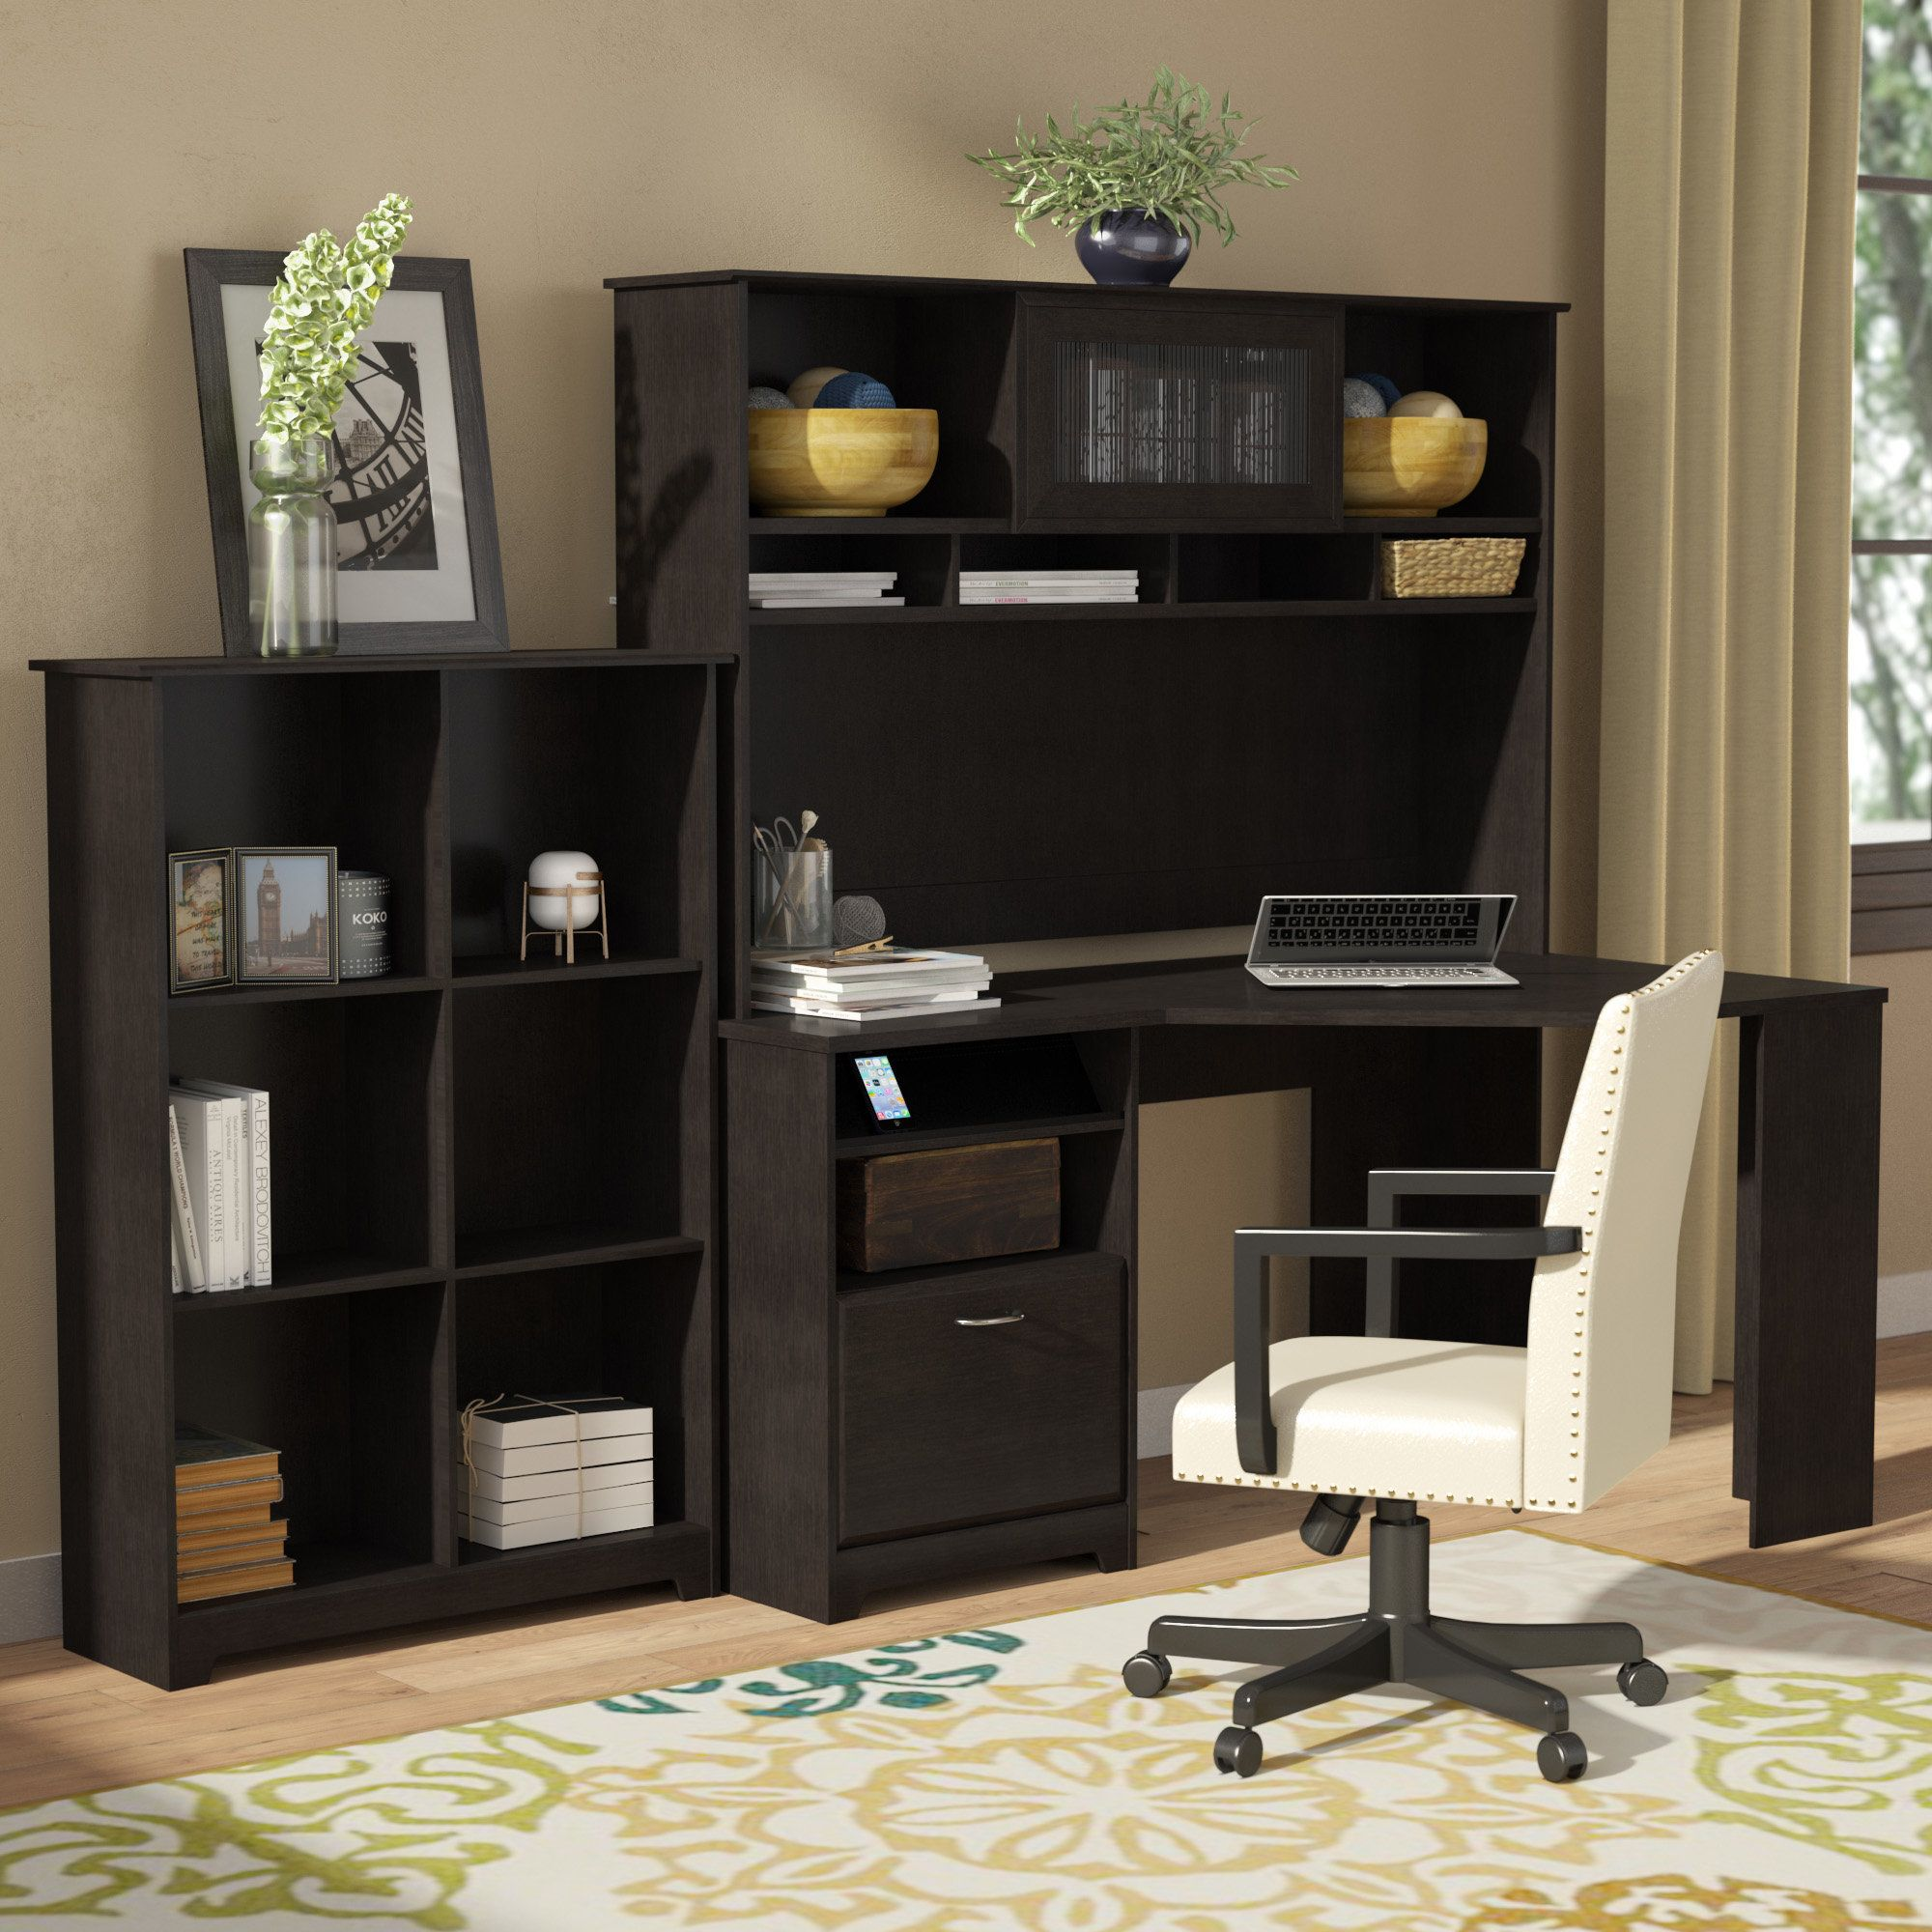 Hillsdale corner desk with hutch and bookcase products pinterest